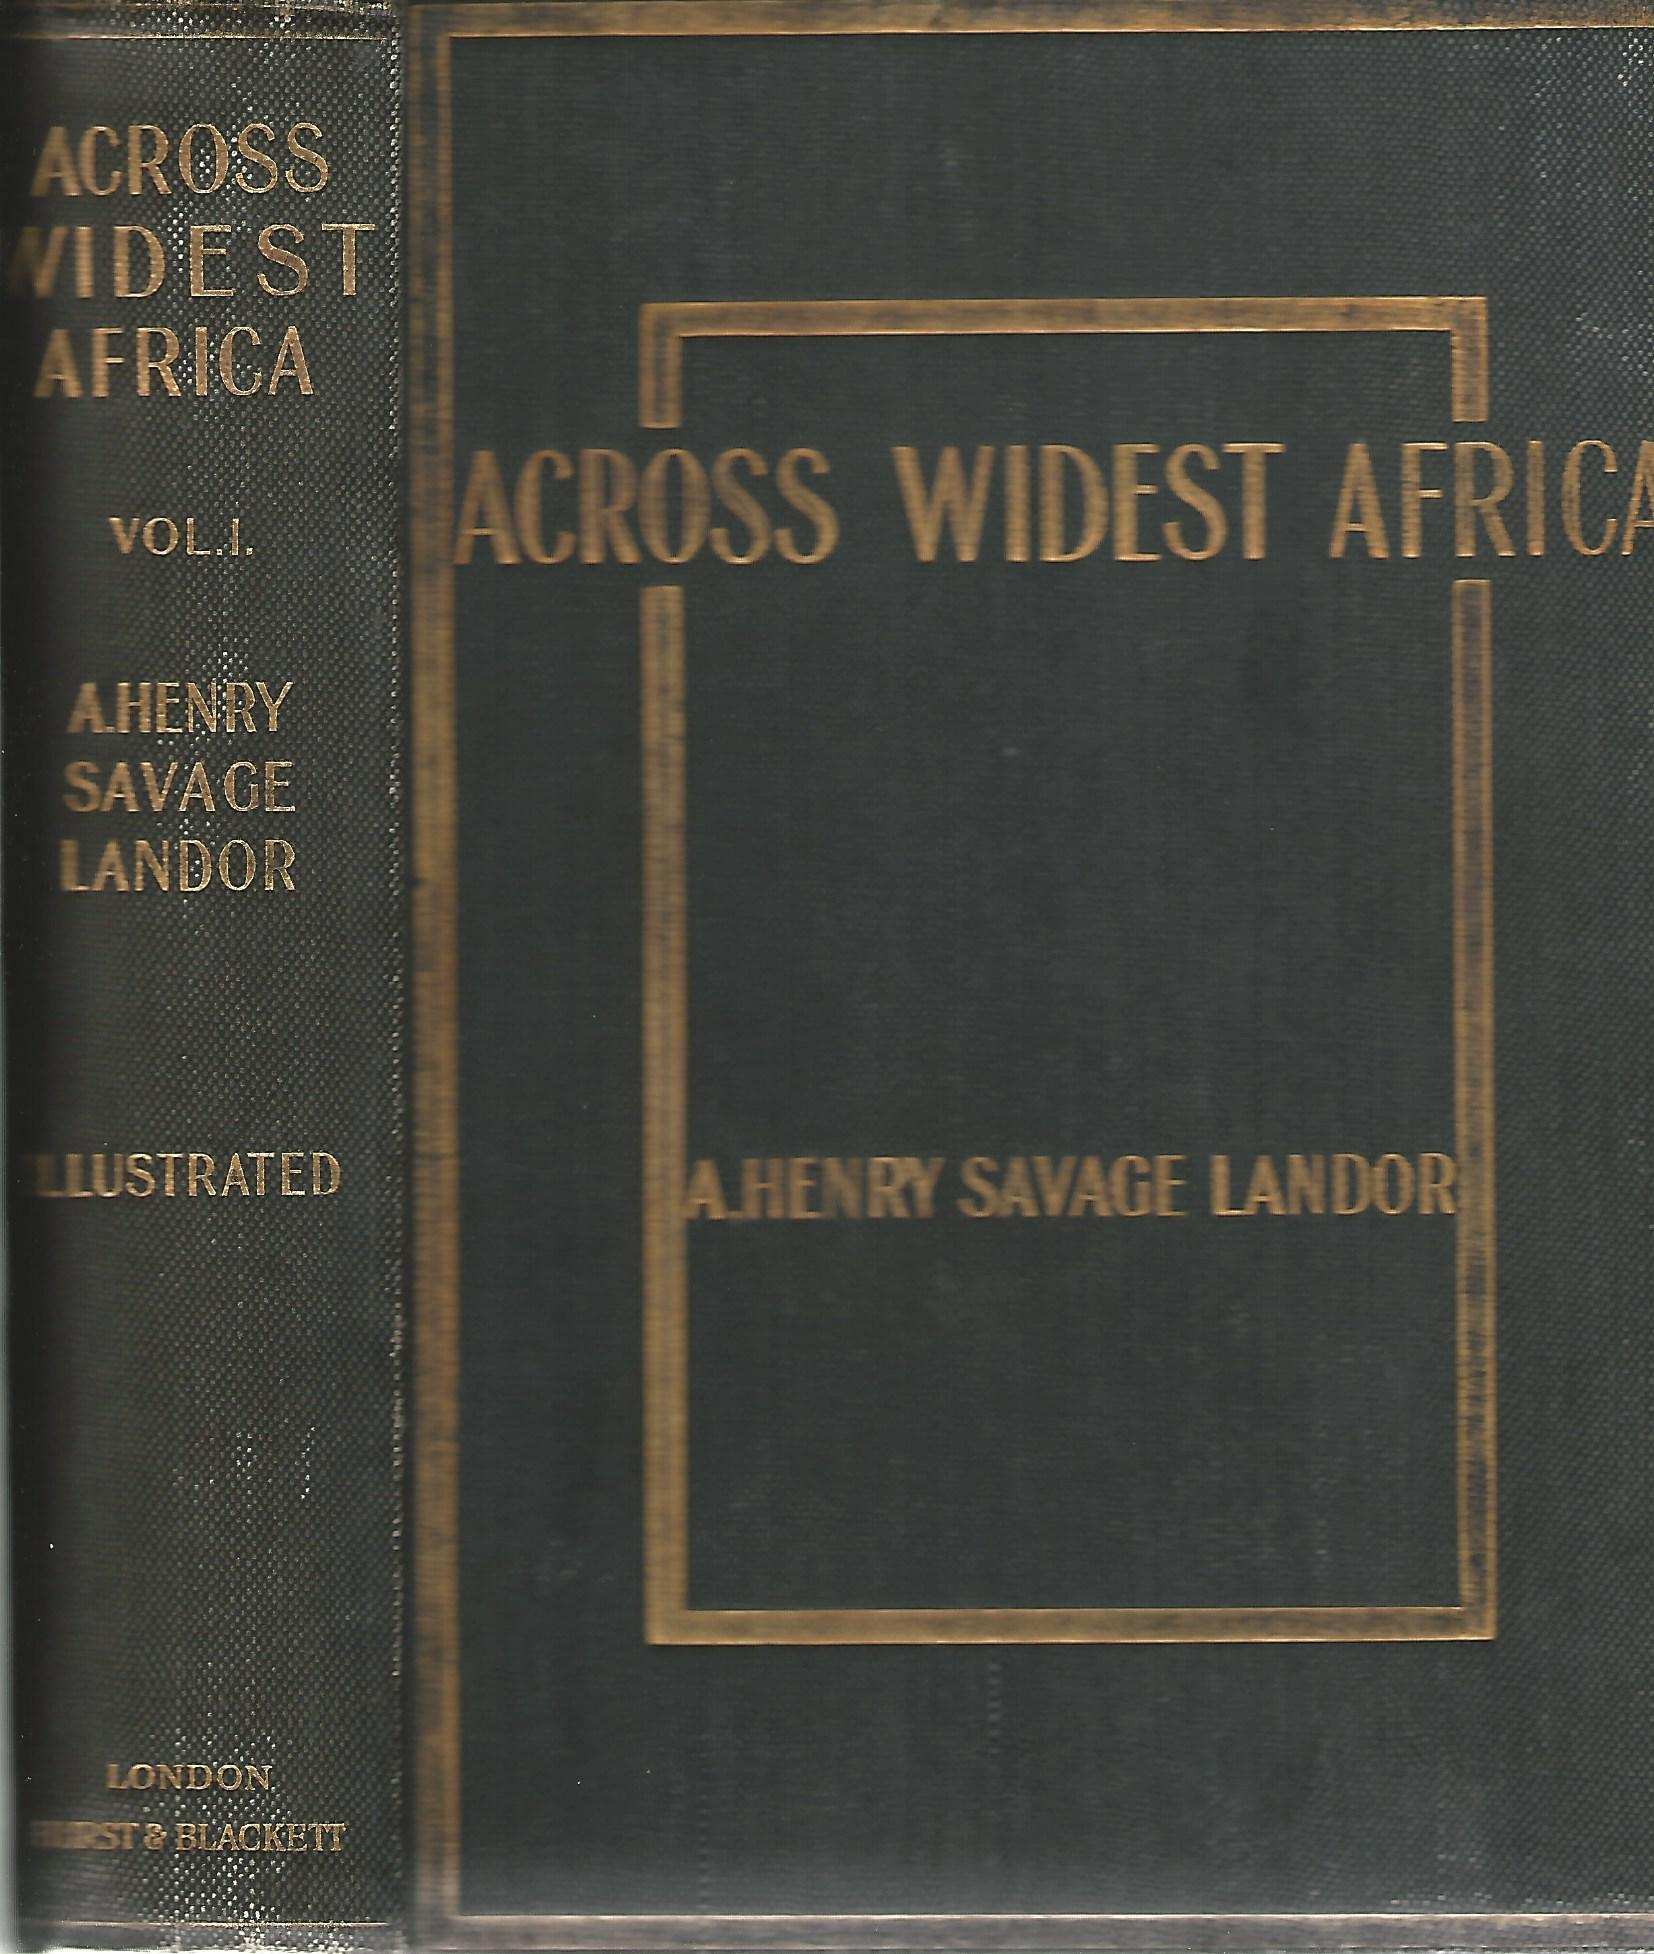 Image for Across Widest Africa: An Account of the Country and People of Eastern, Central and Wester Africa as seen During a Twelve Months Journey from Djibuti to Cape Verde. (2 Volumes Complete)